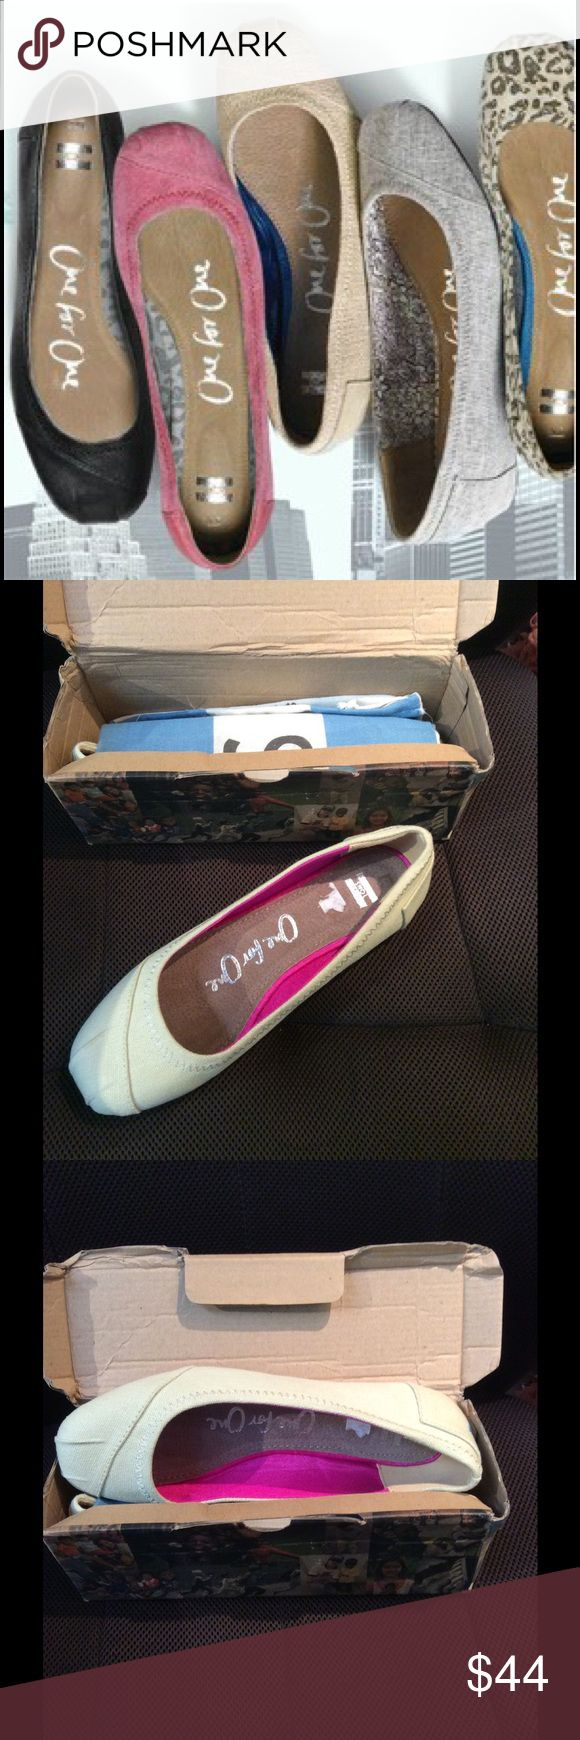 TOMS Cream Ballet Flats Cute shoes in mint condition! Never been worn. Comes with shoe dust bag. No stains, rips or scuffs. Box can be shipped as well upon request. Size 9 TOMS Shoes Flats & Loafers